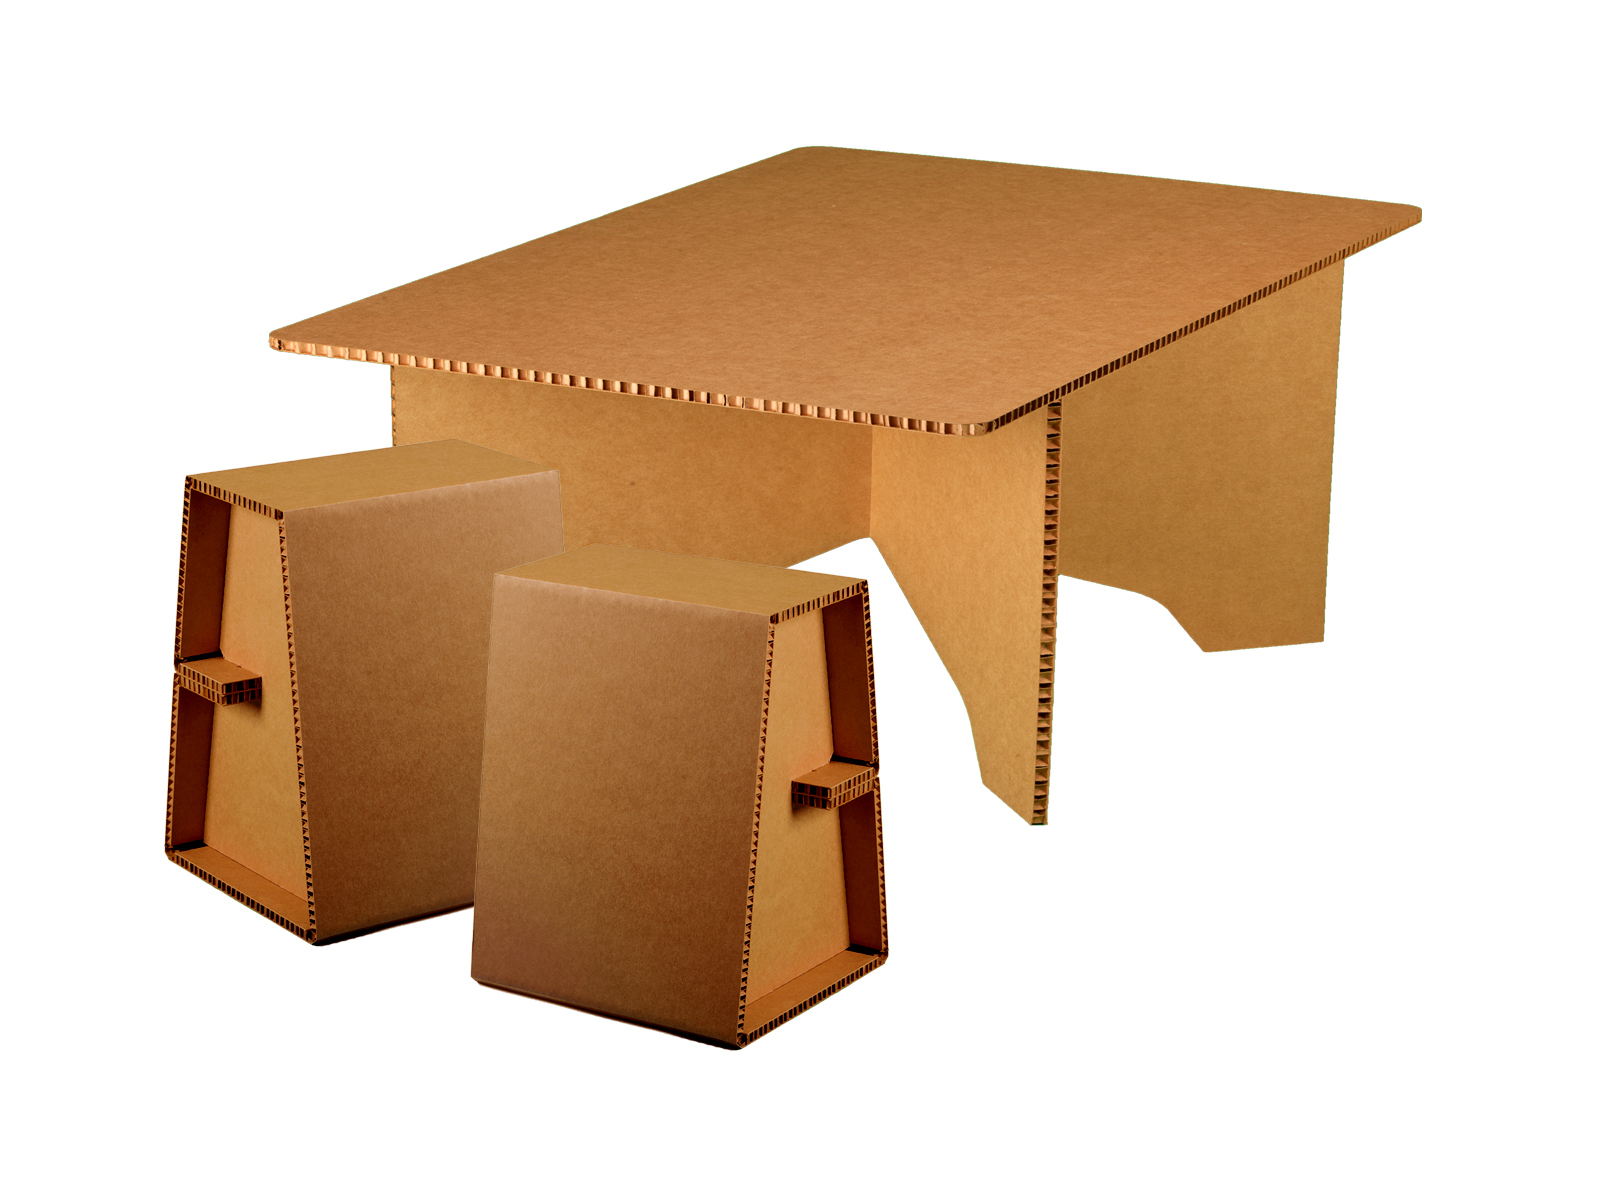 cardboard coffee table chairigami intros a range of